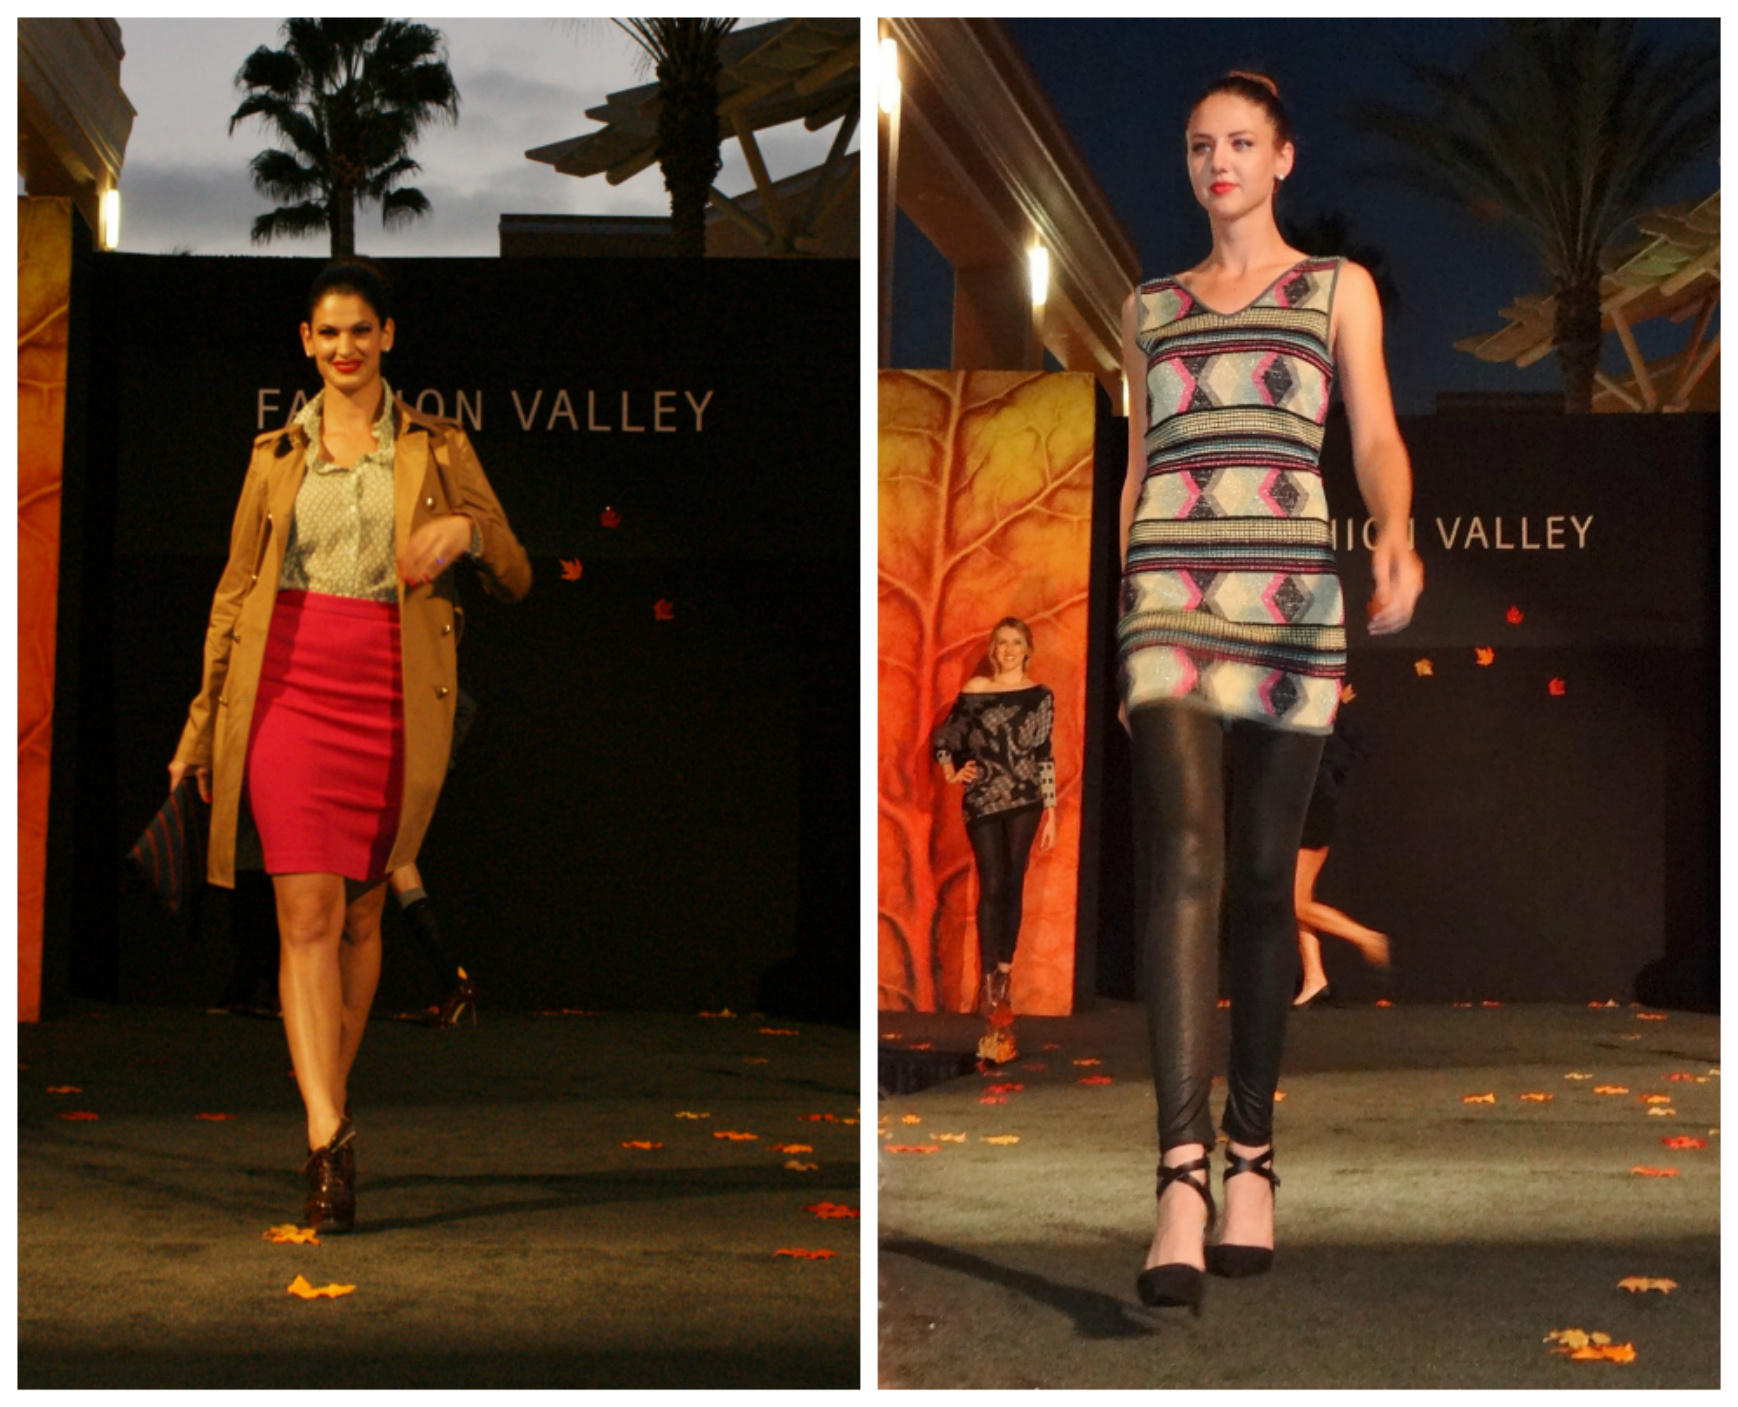 Fashion in the Valley Collage 3